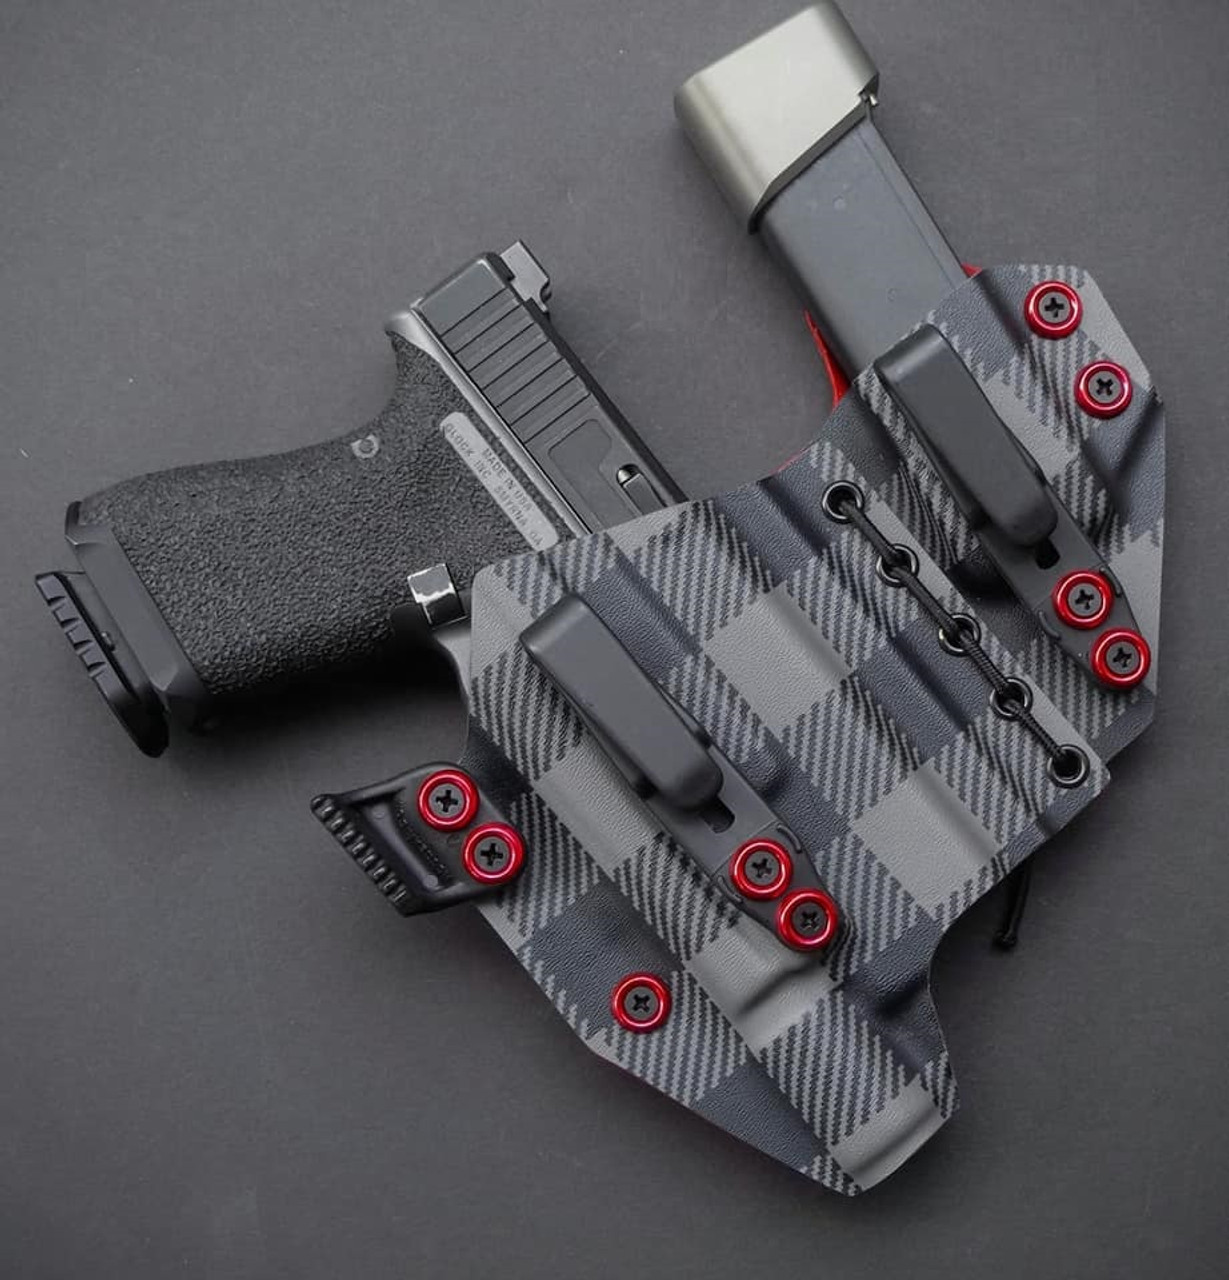 Glock 19 Surefire x300 Flexible Appendix Carry Rig